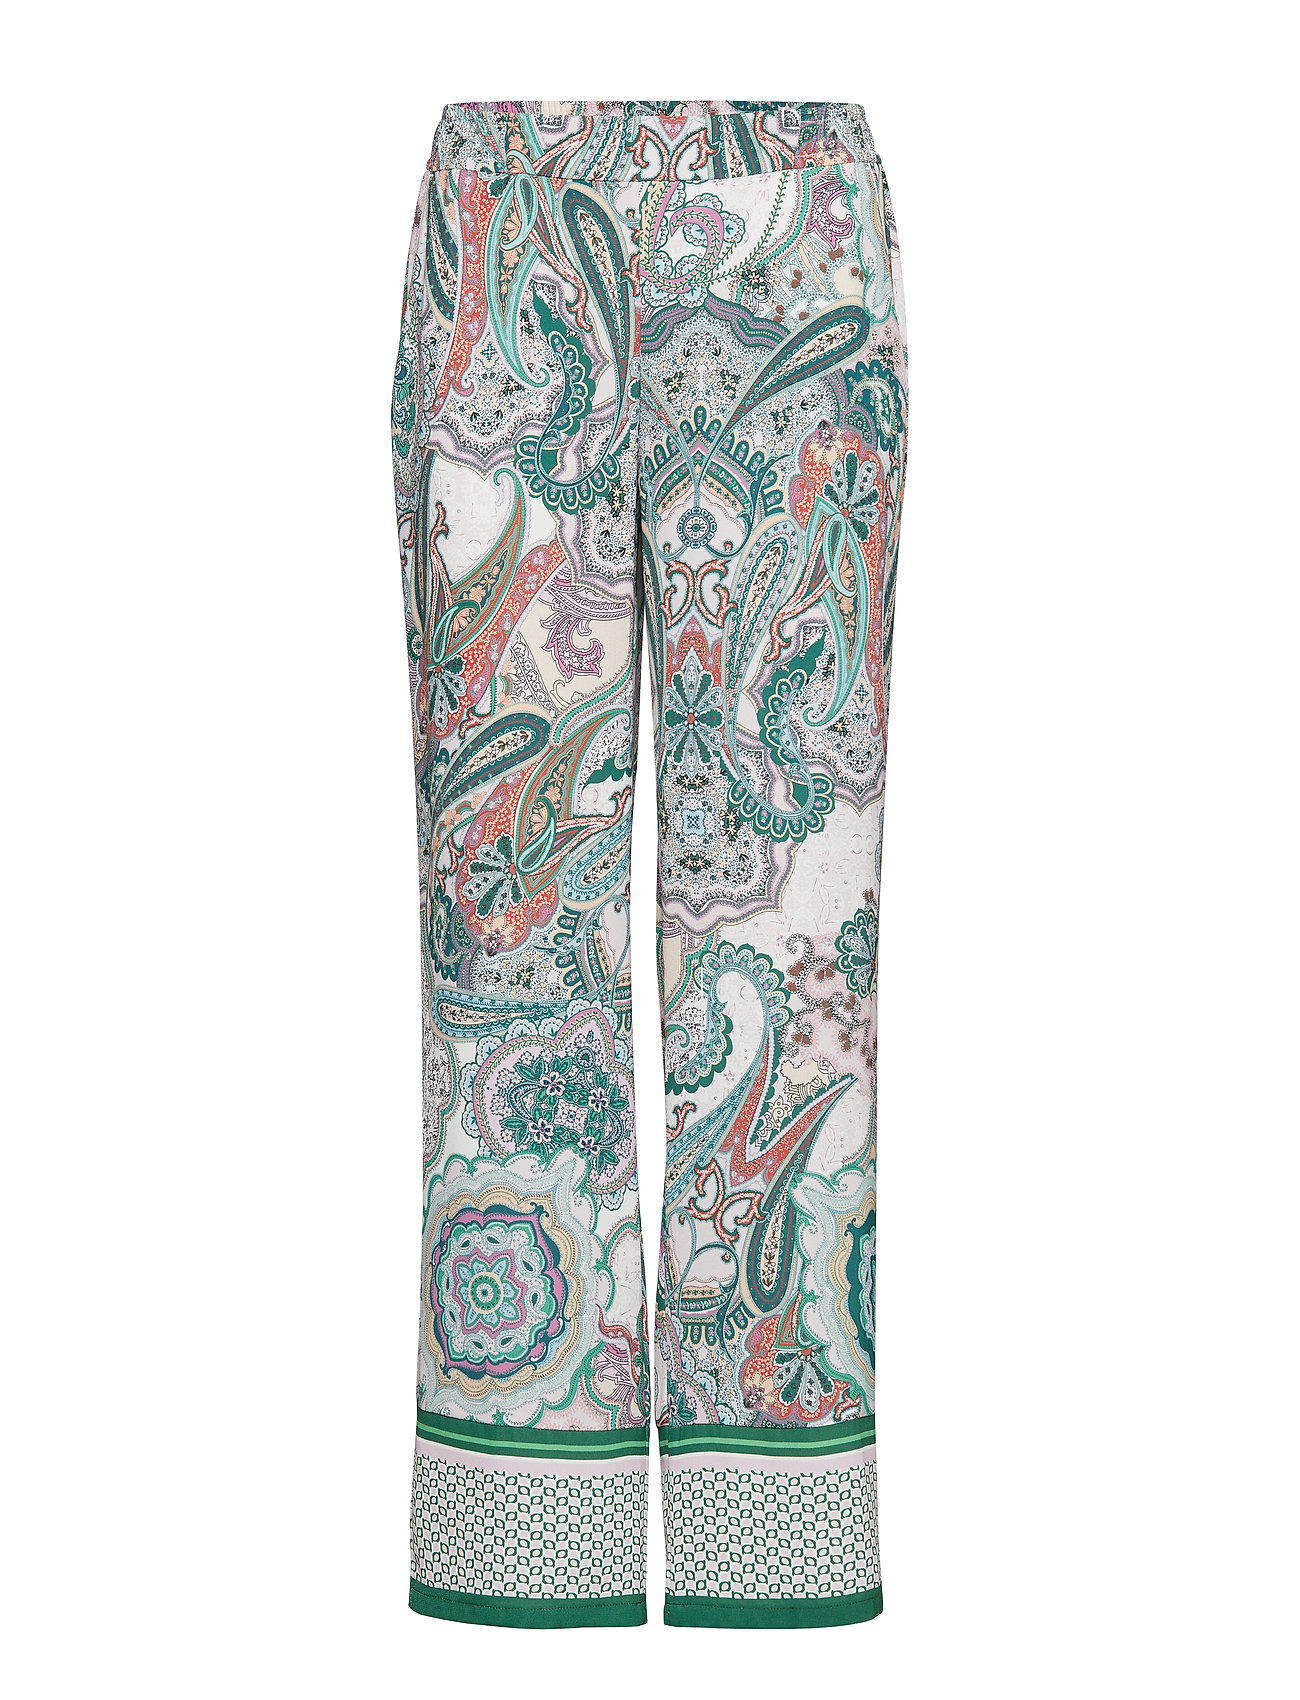 Gerry Weber LEISURE TROUSERS LON - LILAC/PINK/GREEN PRINT